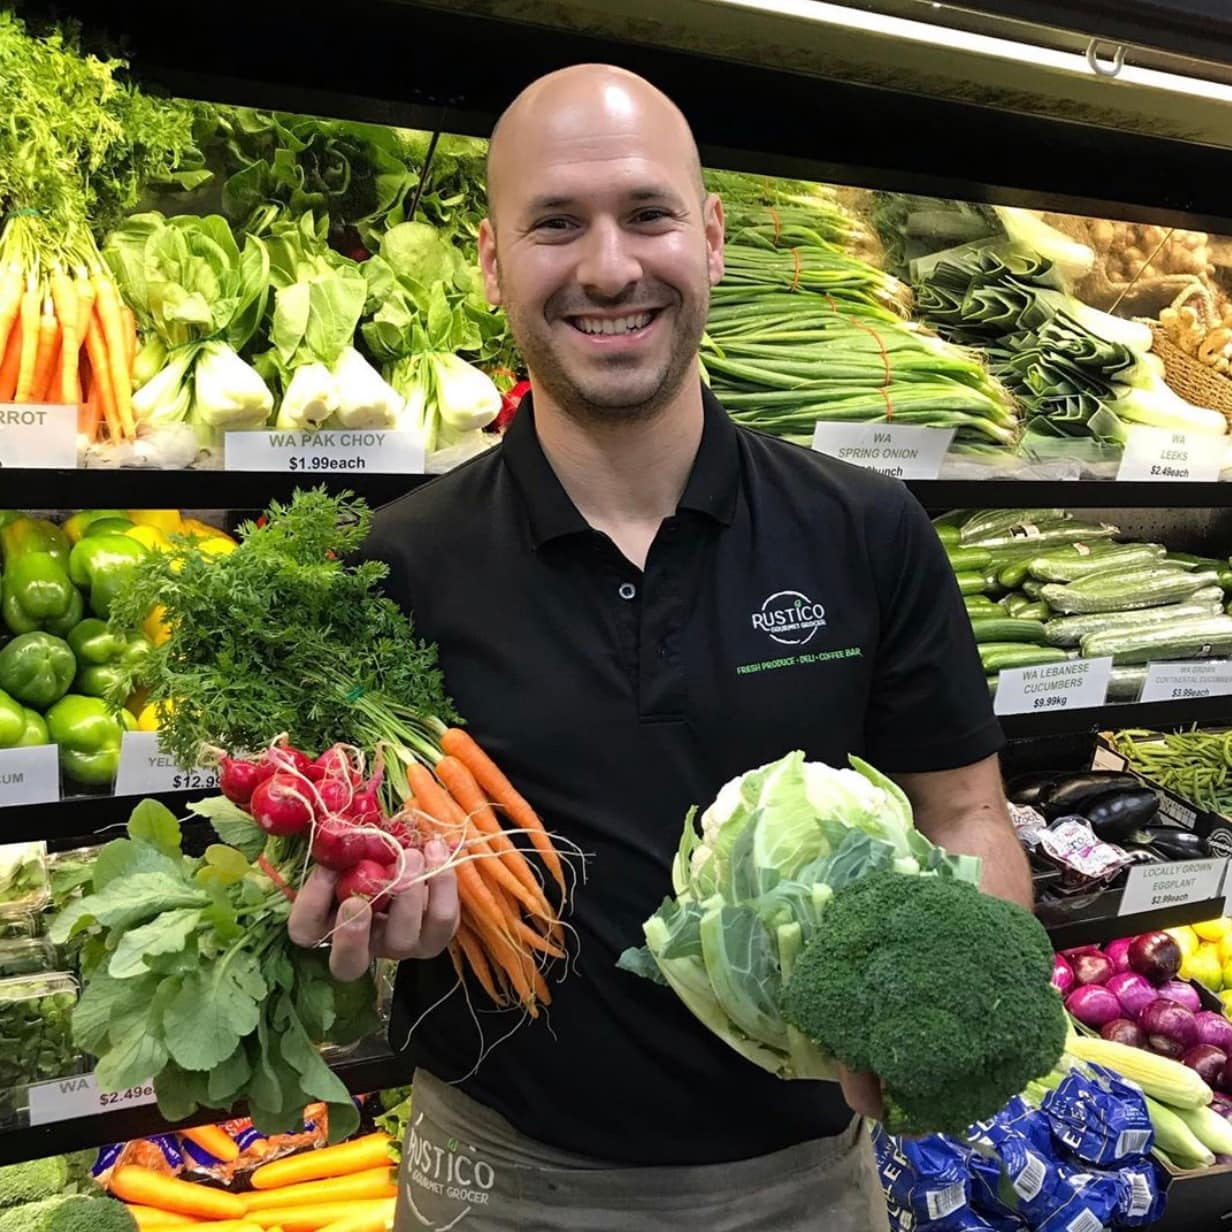 Rustico owner Giusep stands in front of the veggie cripers with carrots and broccoli in his hands.